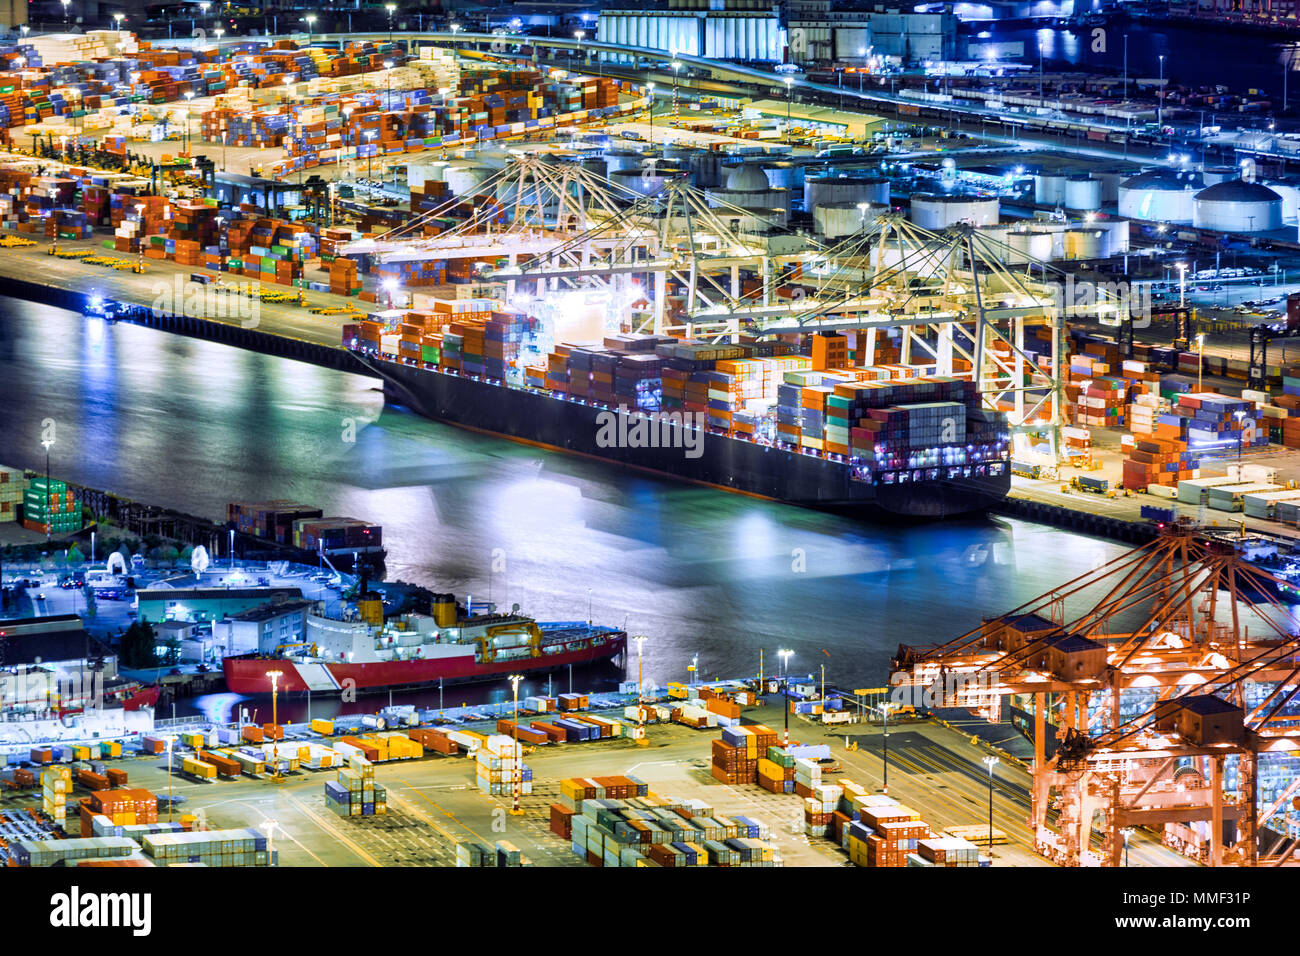 Aerial view of a cargo ship loaded in the Seattle harbor container terminal - Stock Image